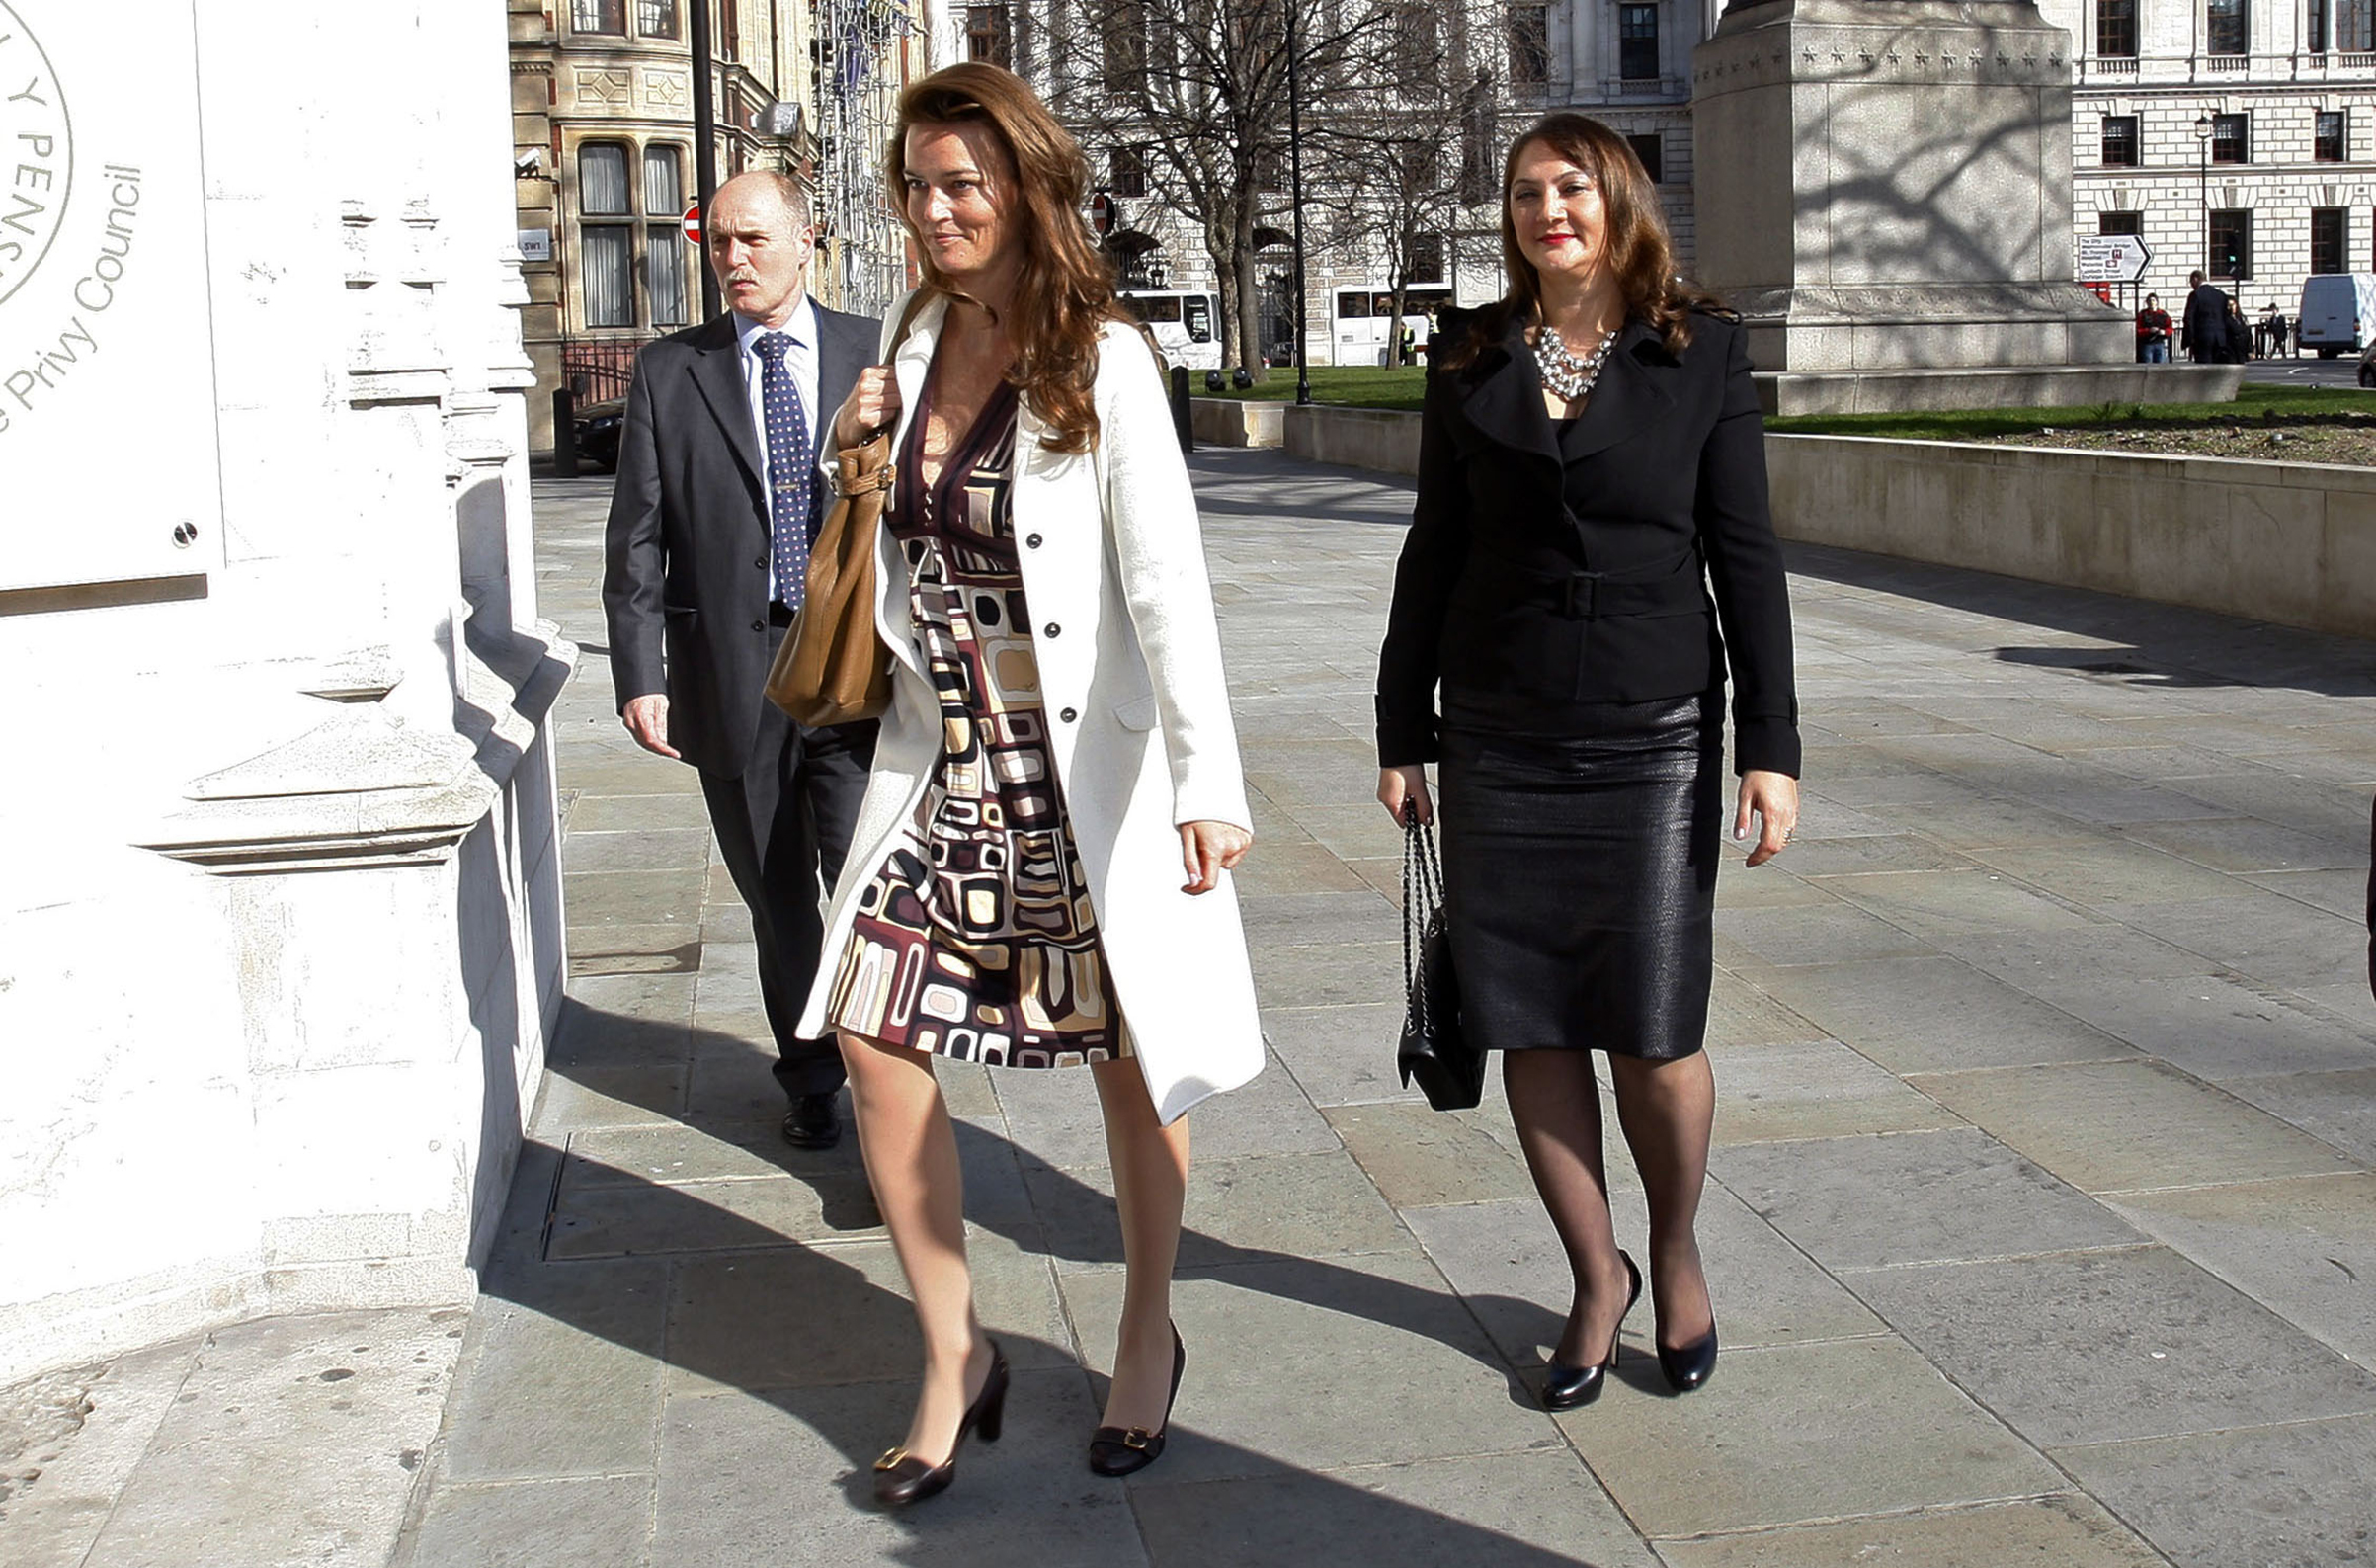 German heiress Katrin Radmacher, followed by Vardag, arrives for her hearing at the Supreme Court in London in 2010.